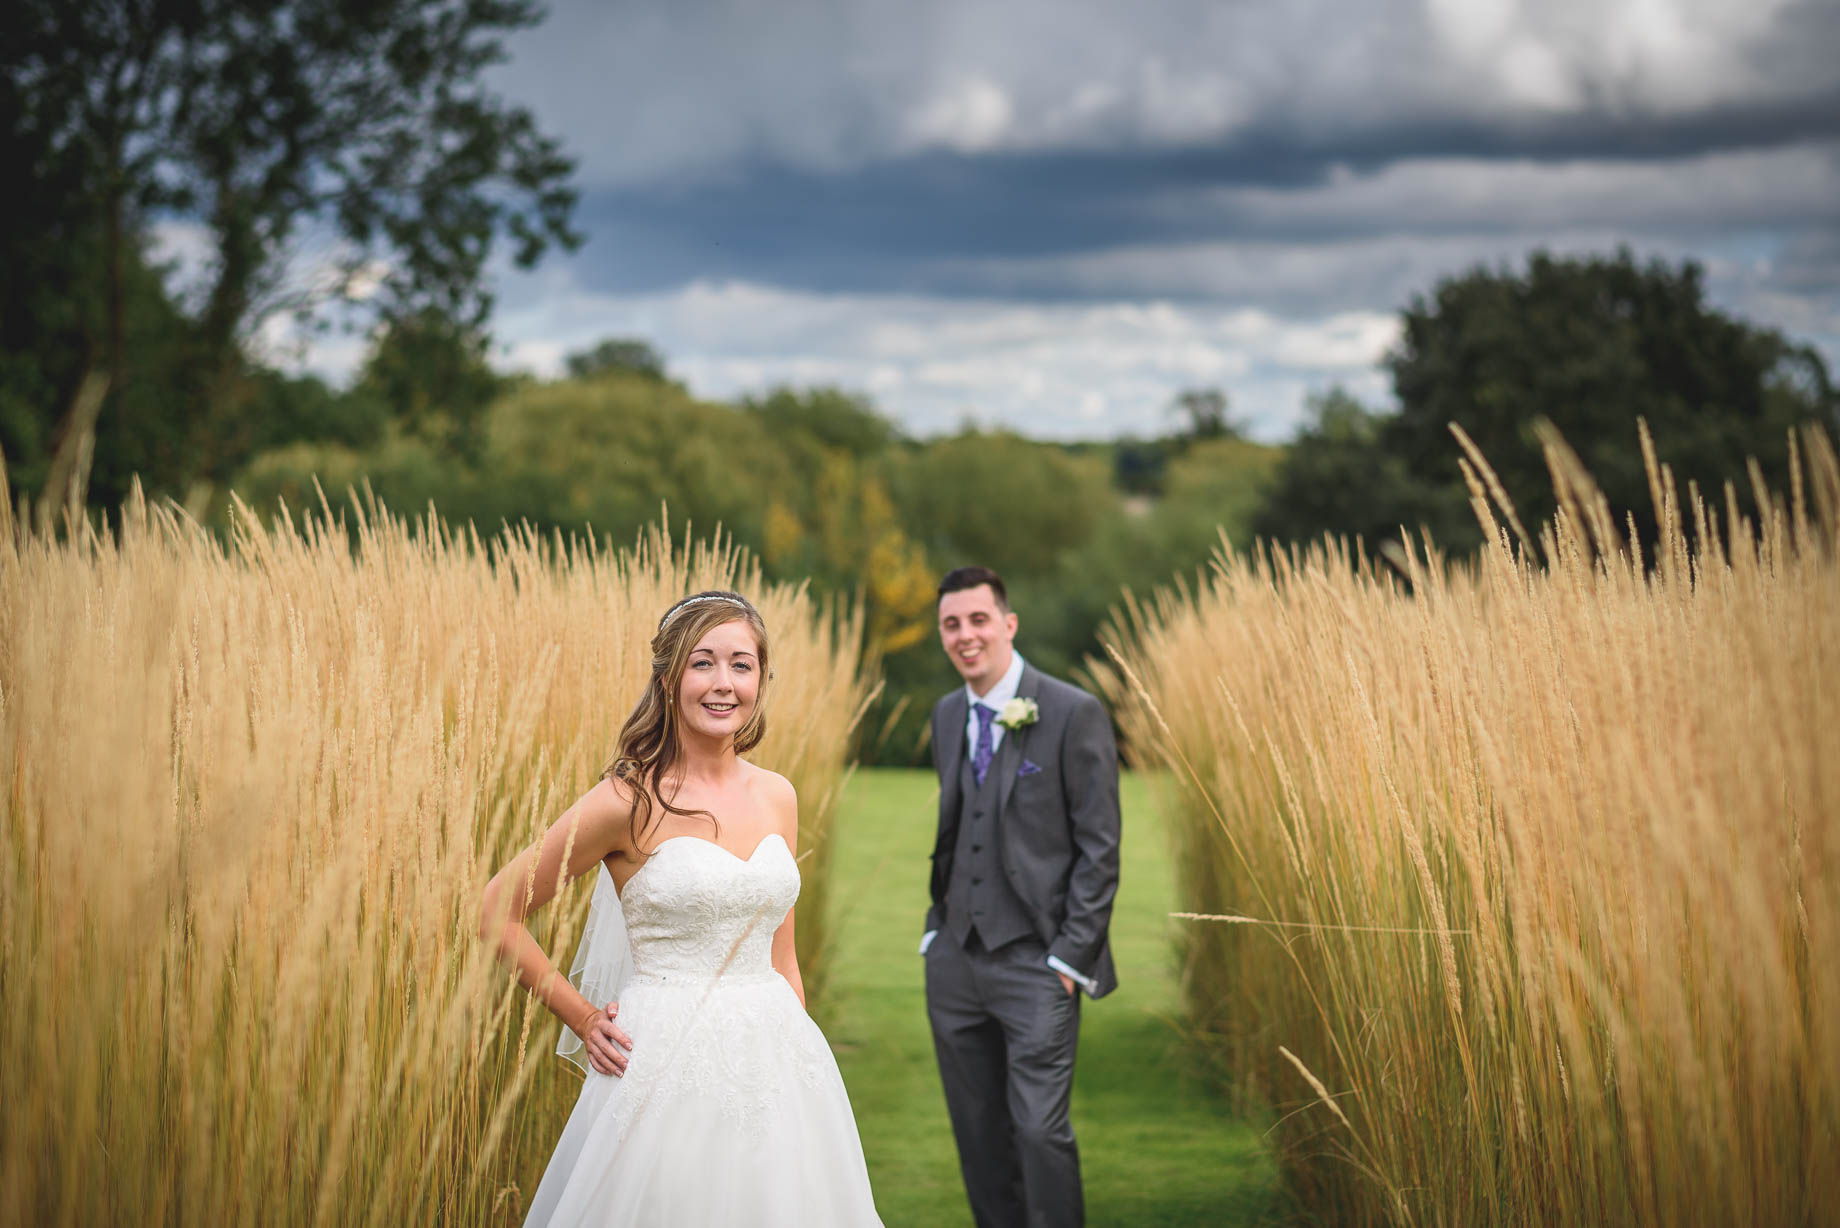 Bury Court Barn wedding photography - Guy Collier - Kirsty and Lewis (102 of 150)